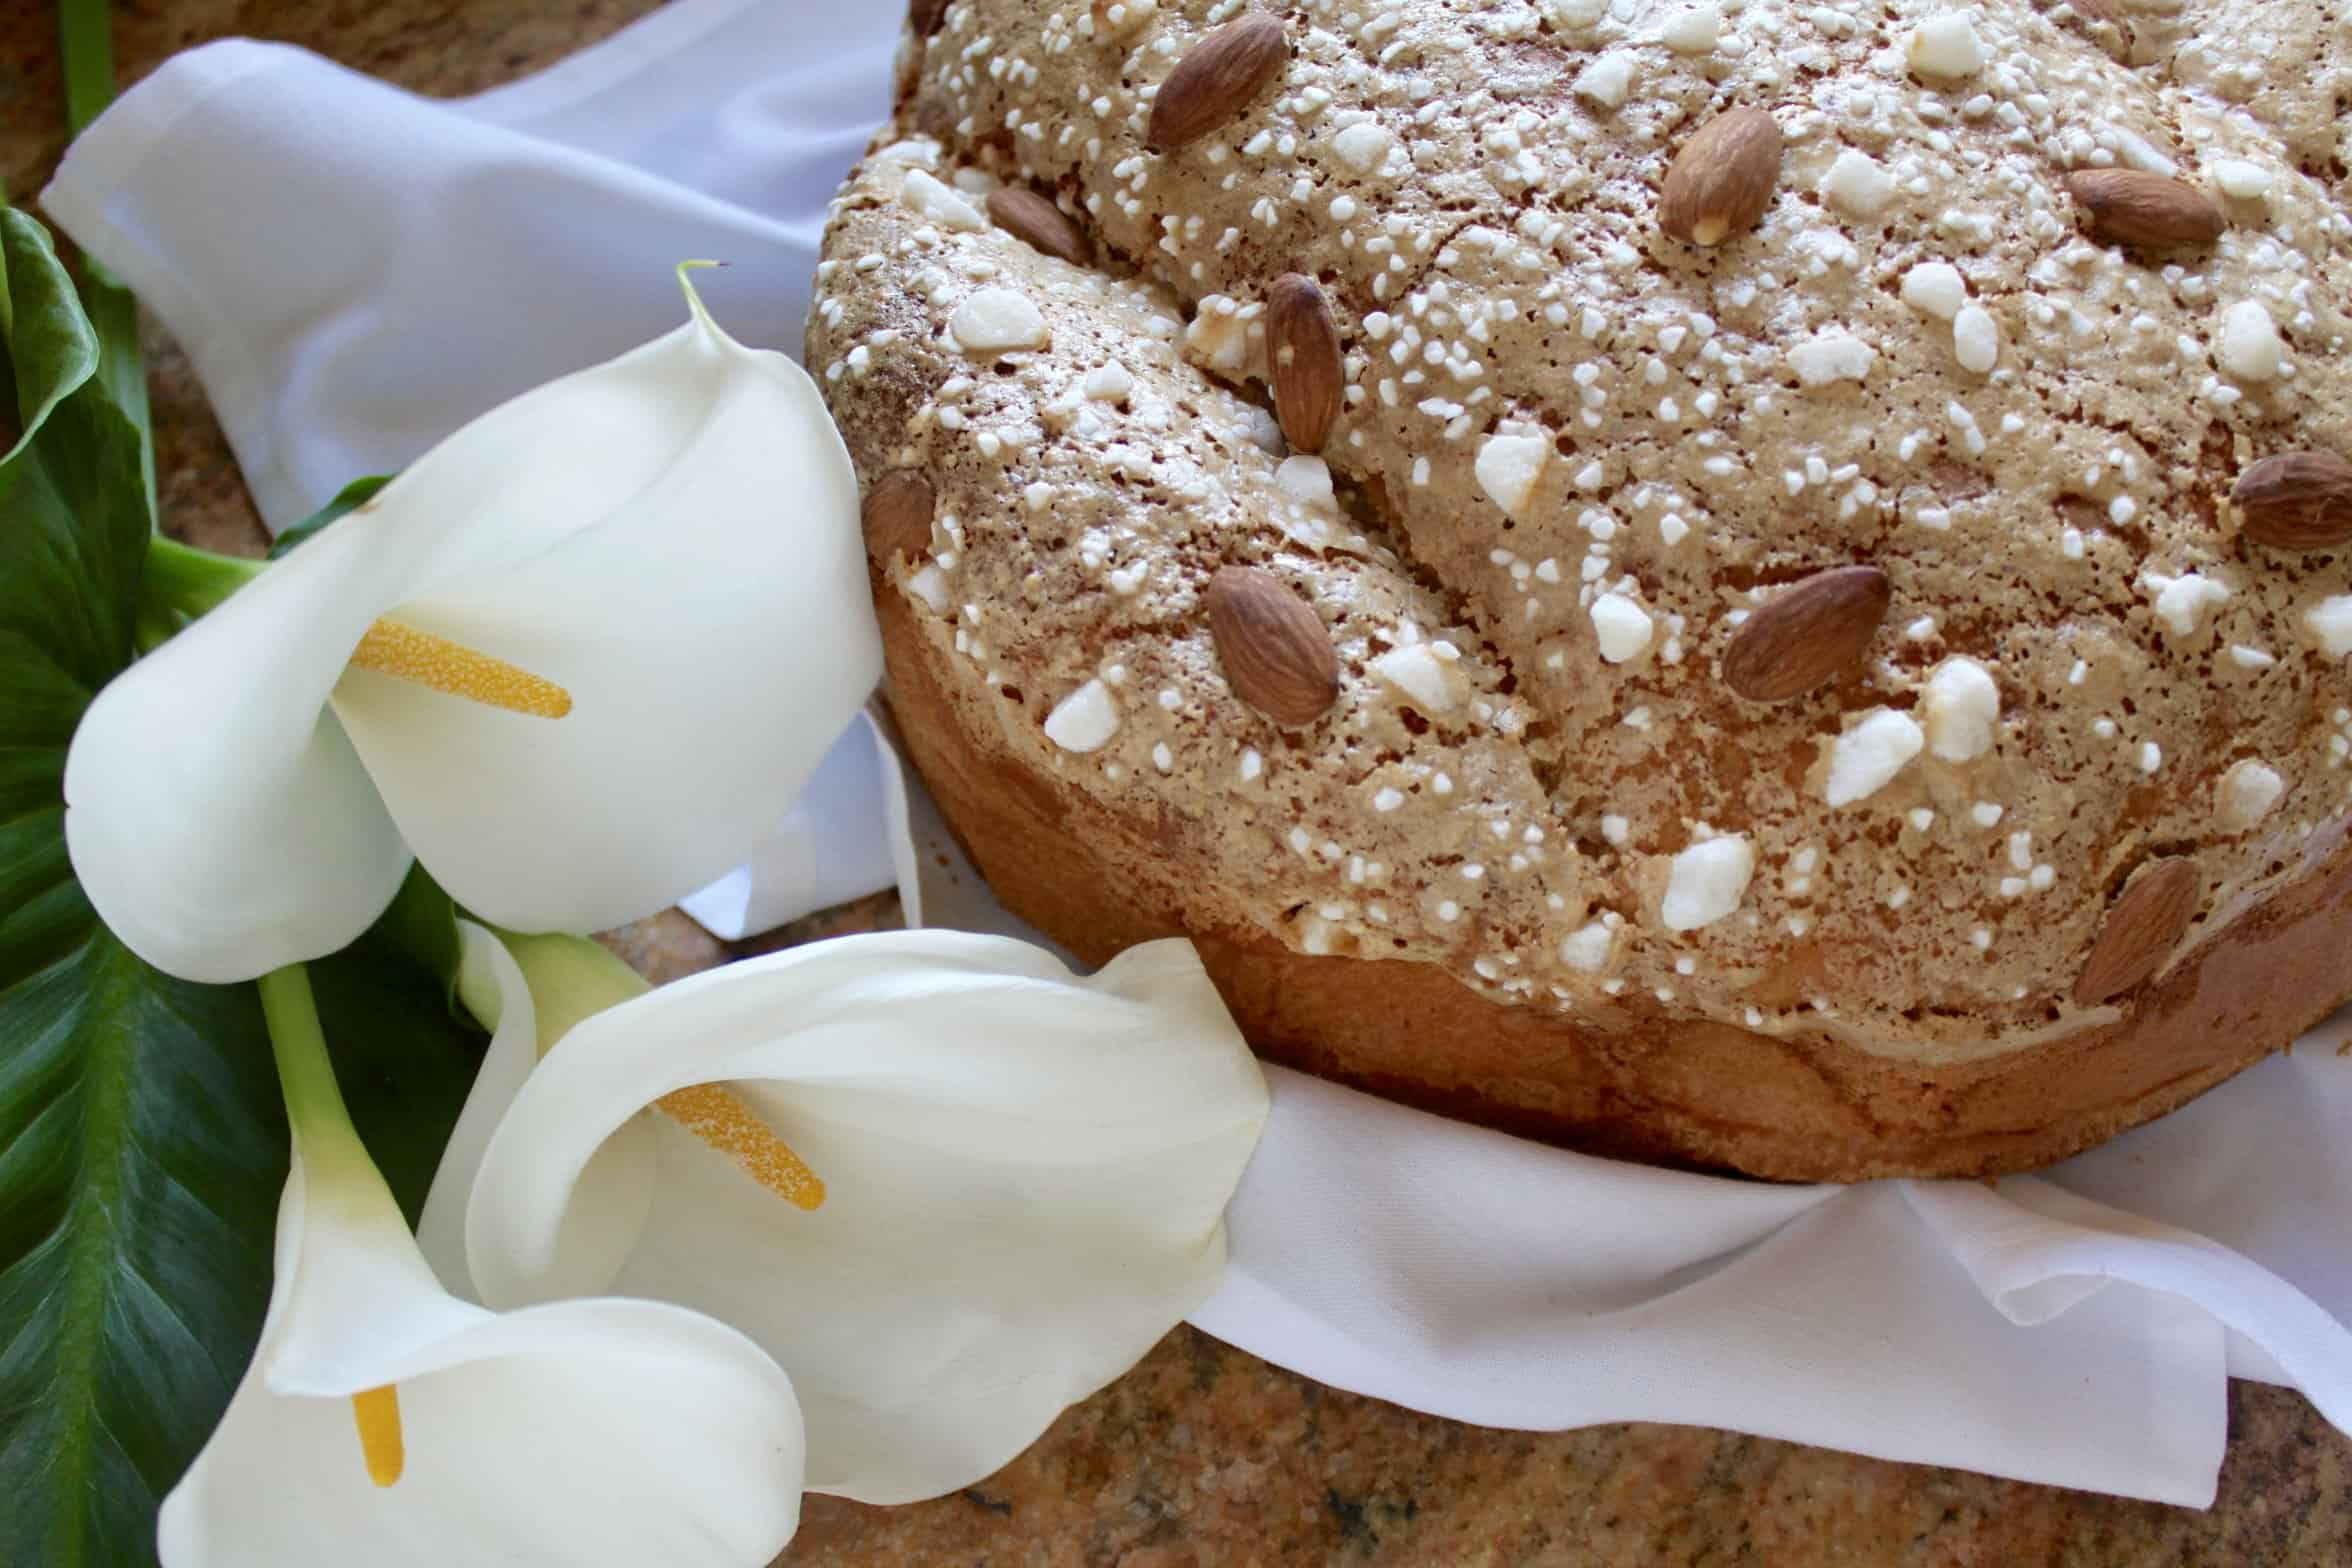 Colomba di Pasqua or Easter Dove Bread